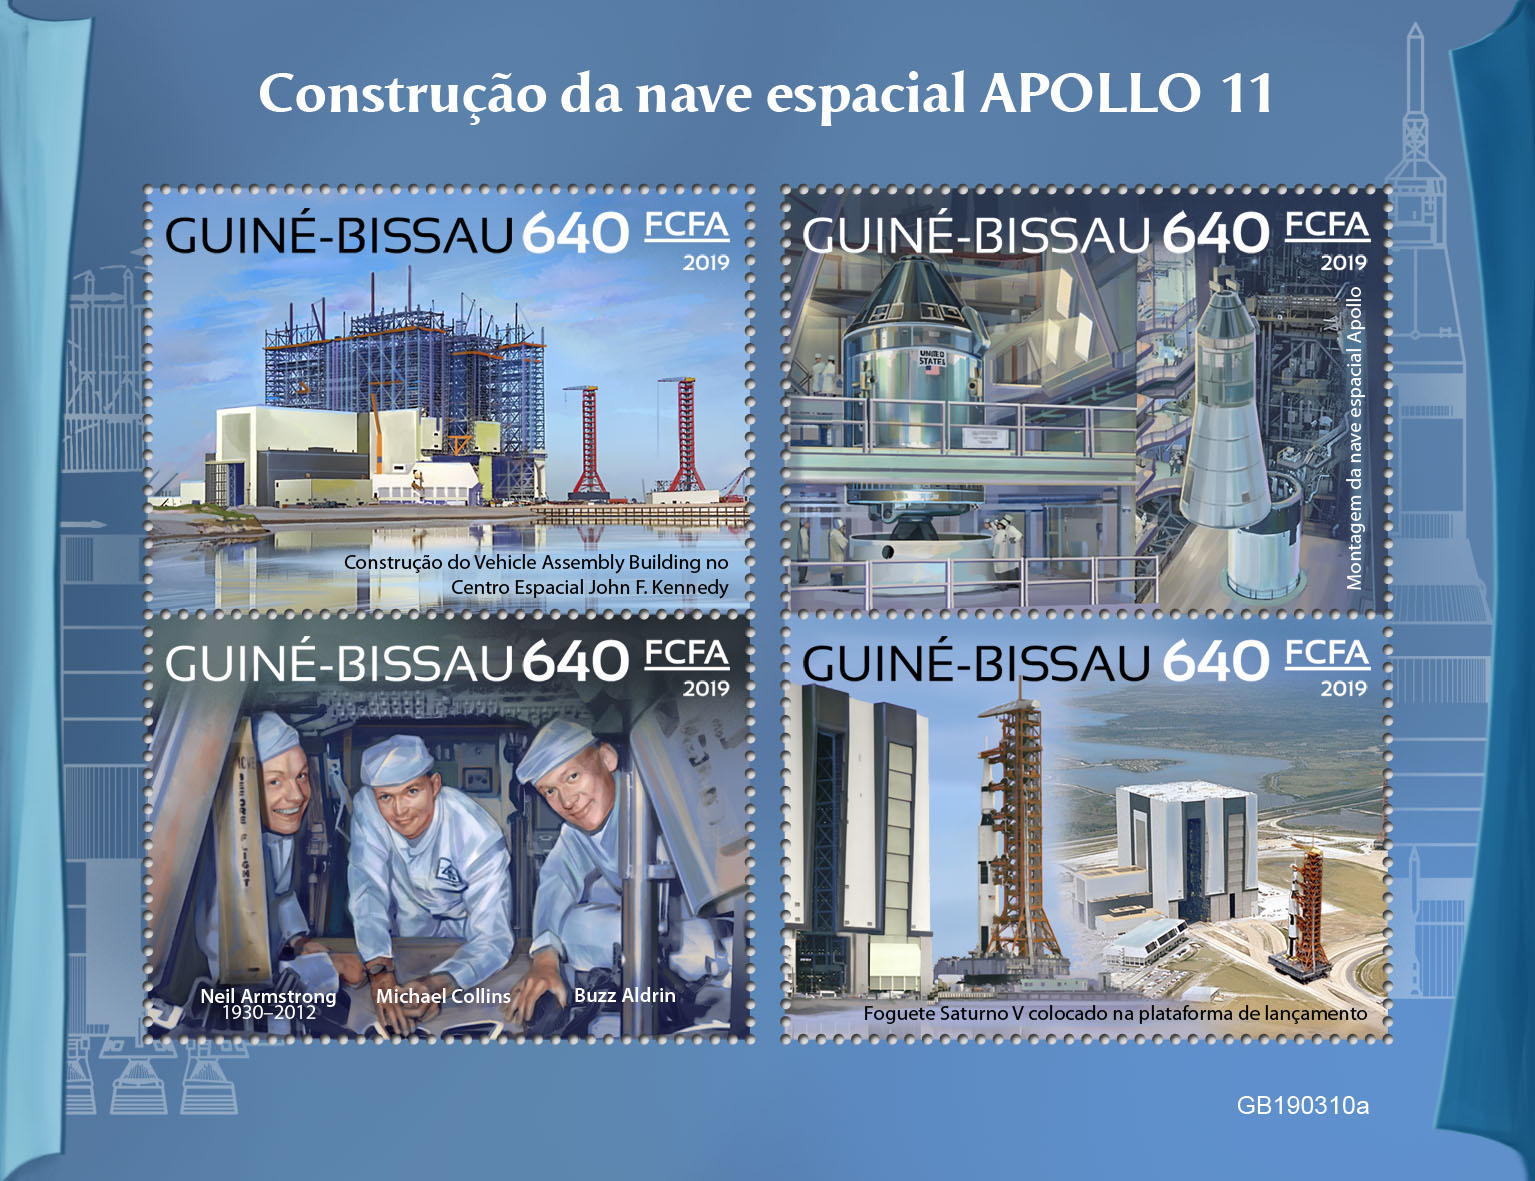 Apollo 11 - Issue of Guinée-Bissau postage stamps